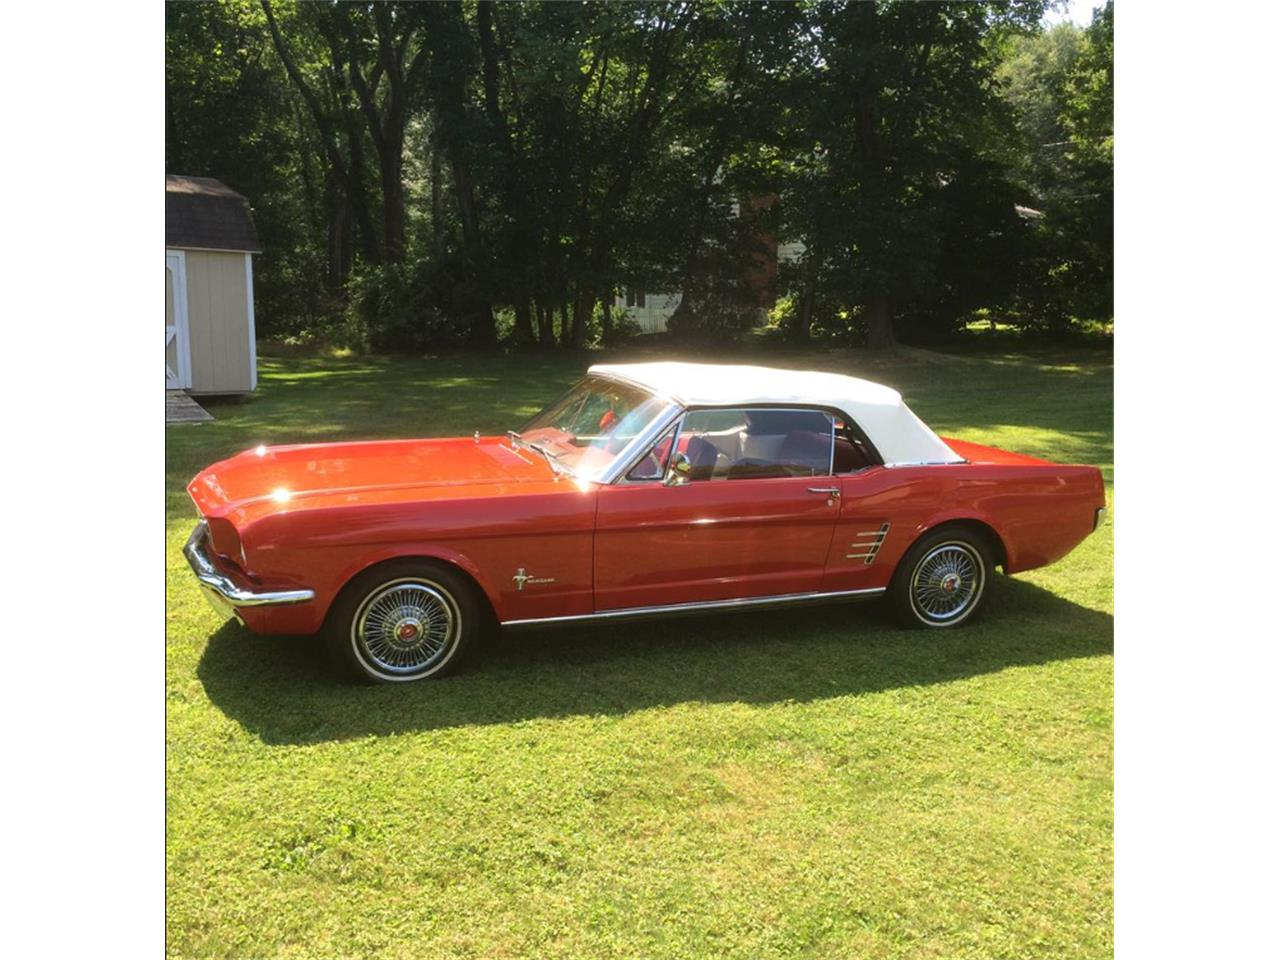 Large Picture of Classic 1966 Ford Mustang - $22,000.00 Offered by a Private Seller - J6KE